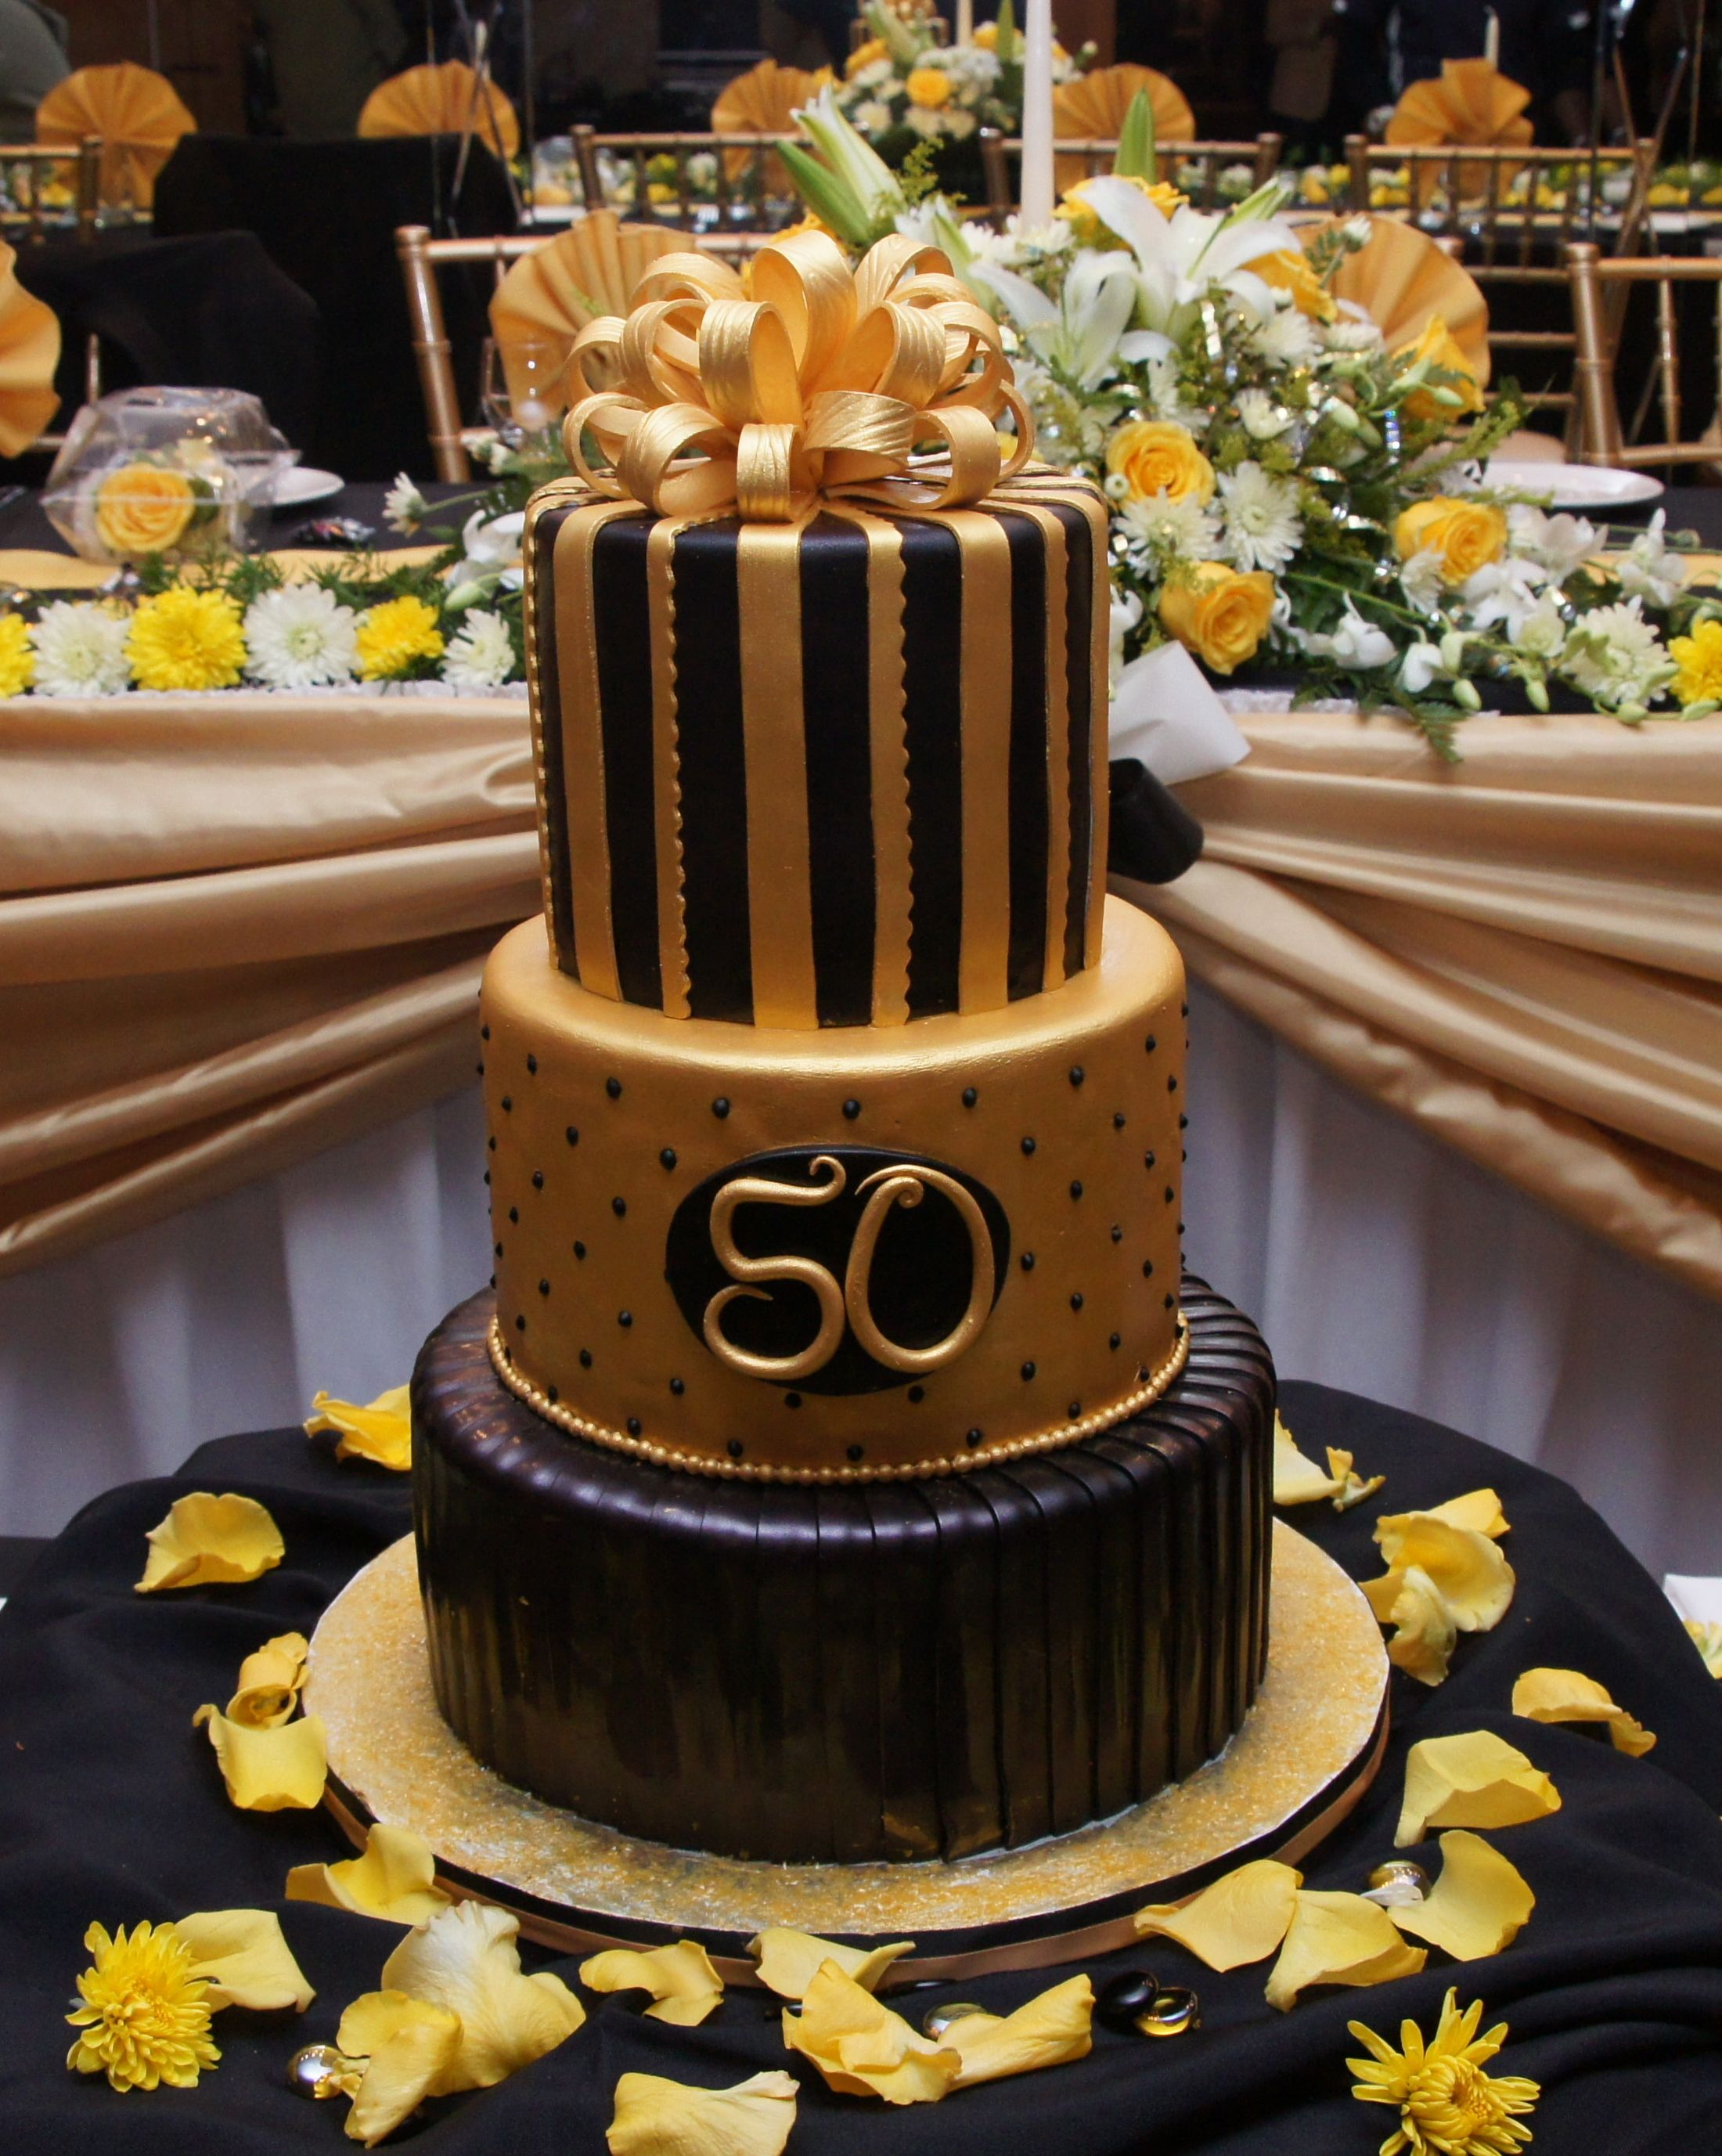 Amazing Black And Gold 50Th Birthday With Gumpaste Bow Topper With Images Funny Birthday Cards Online Barepcheapnameinfo